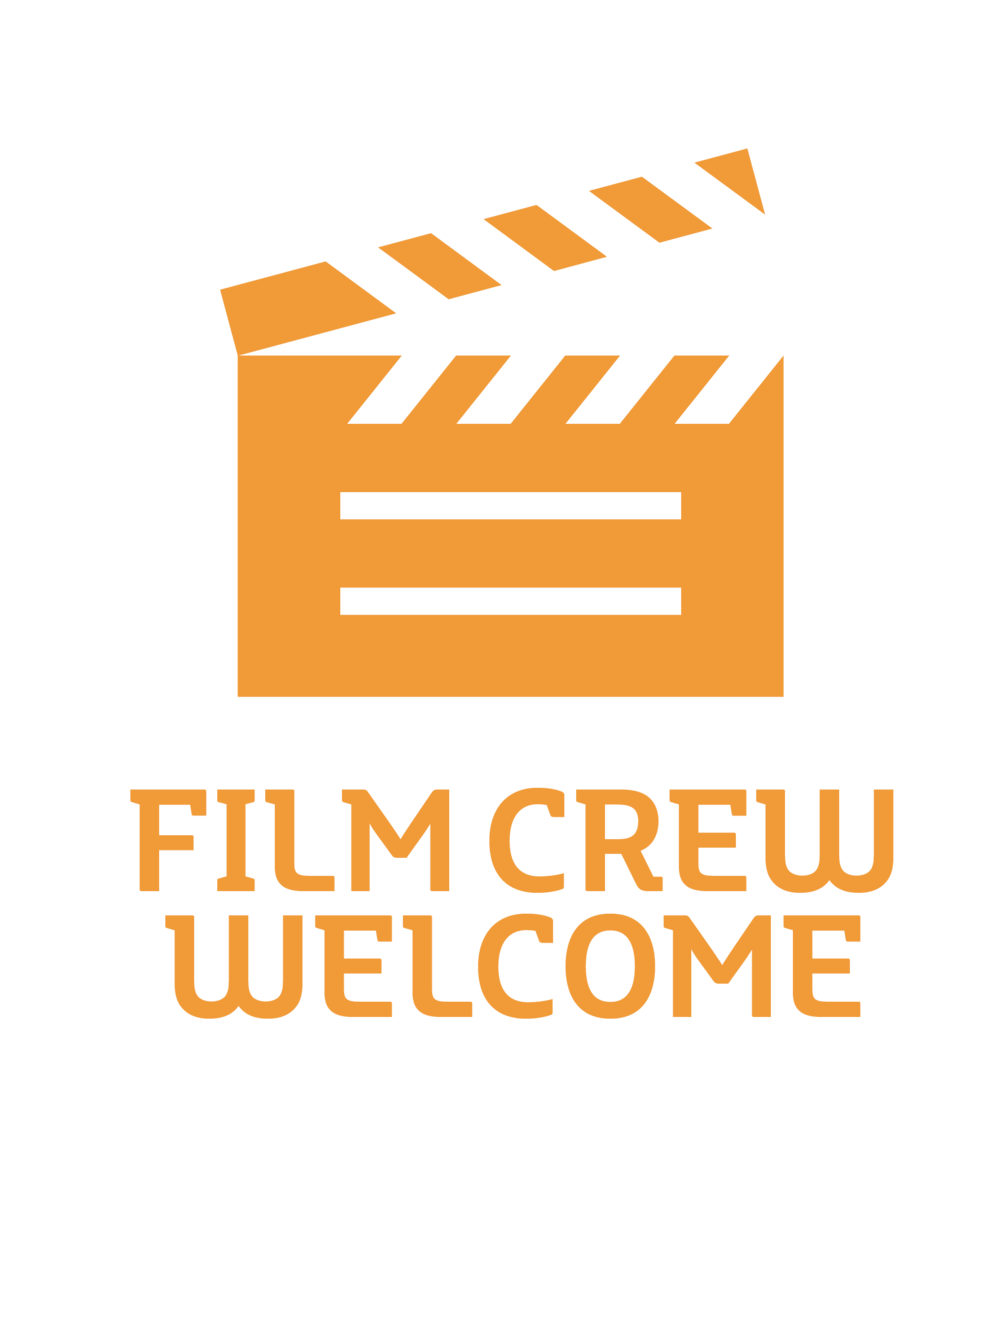 Film Crew welcome.jpg